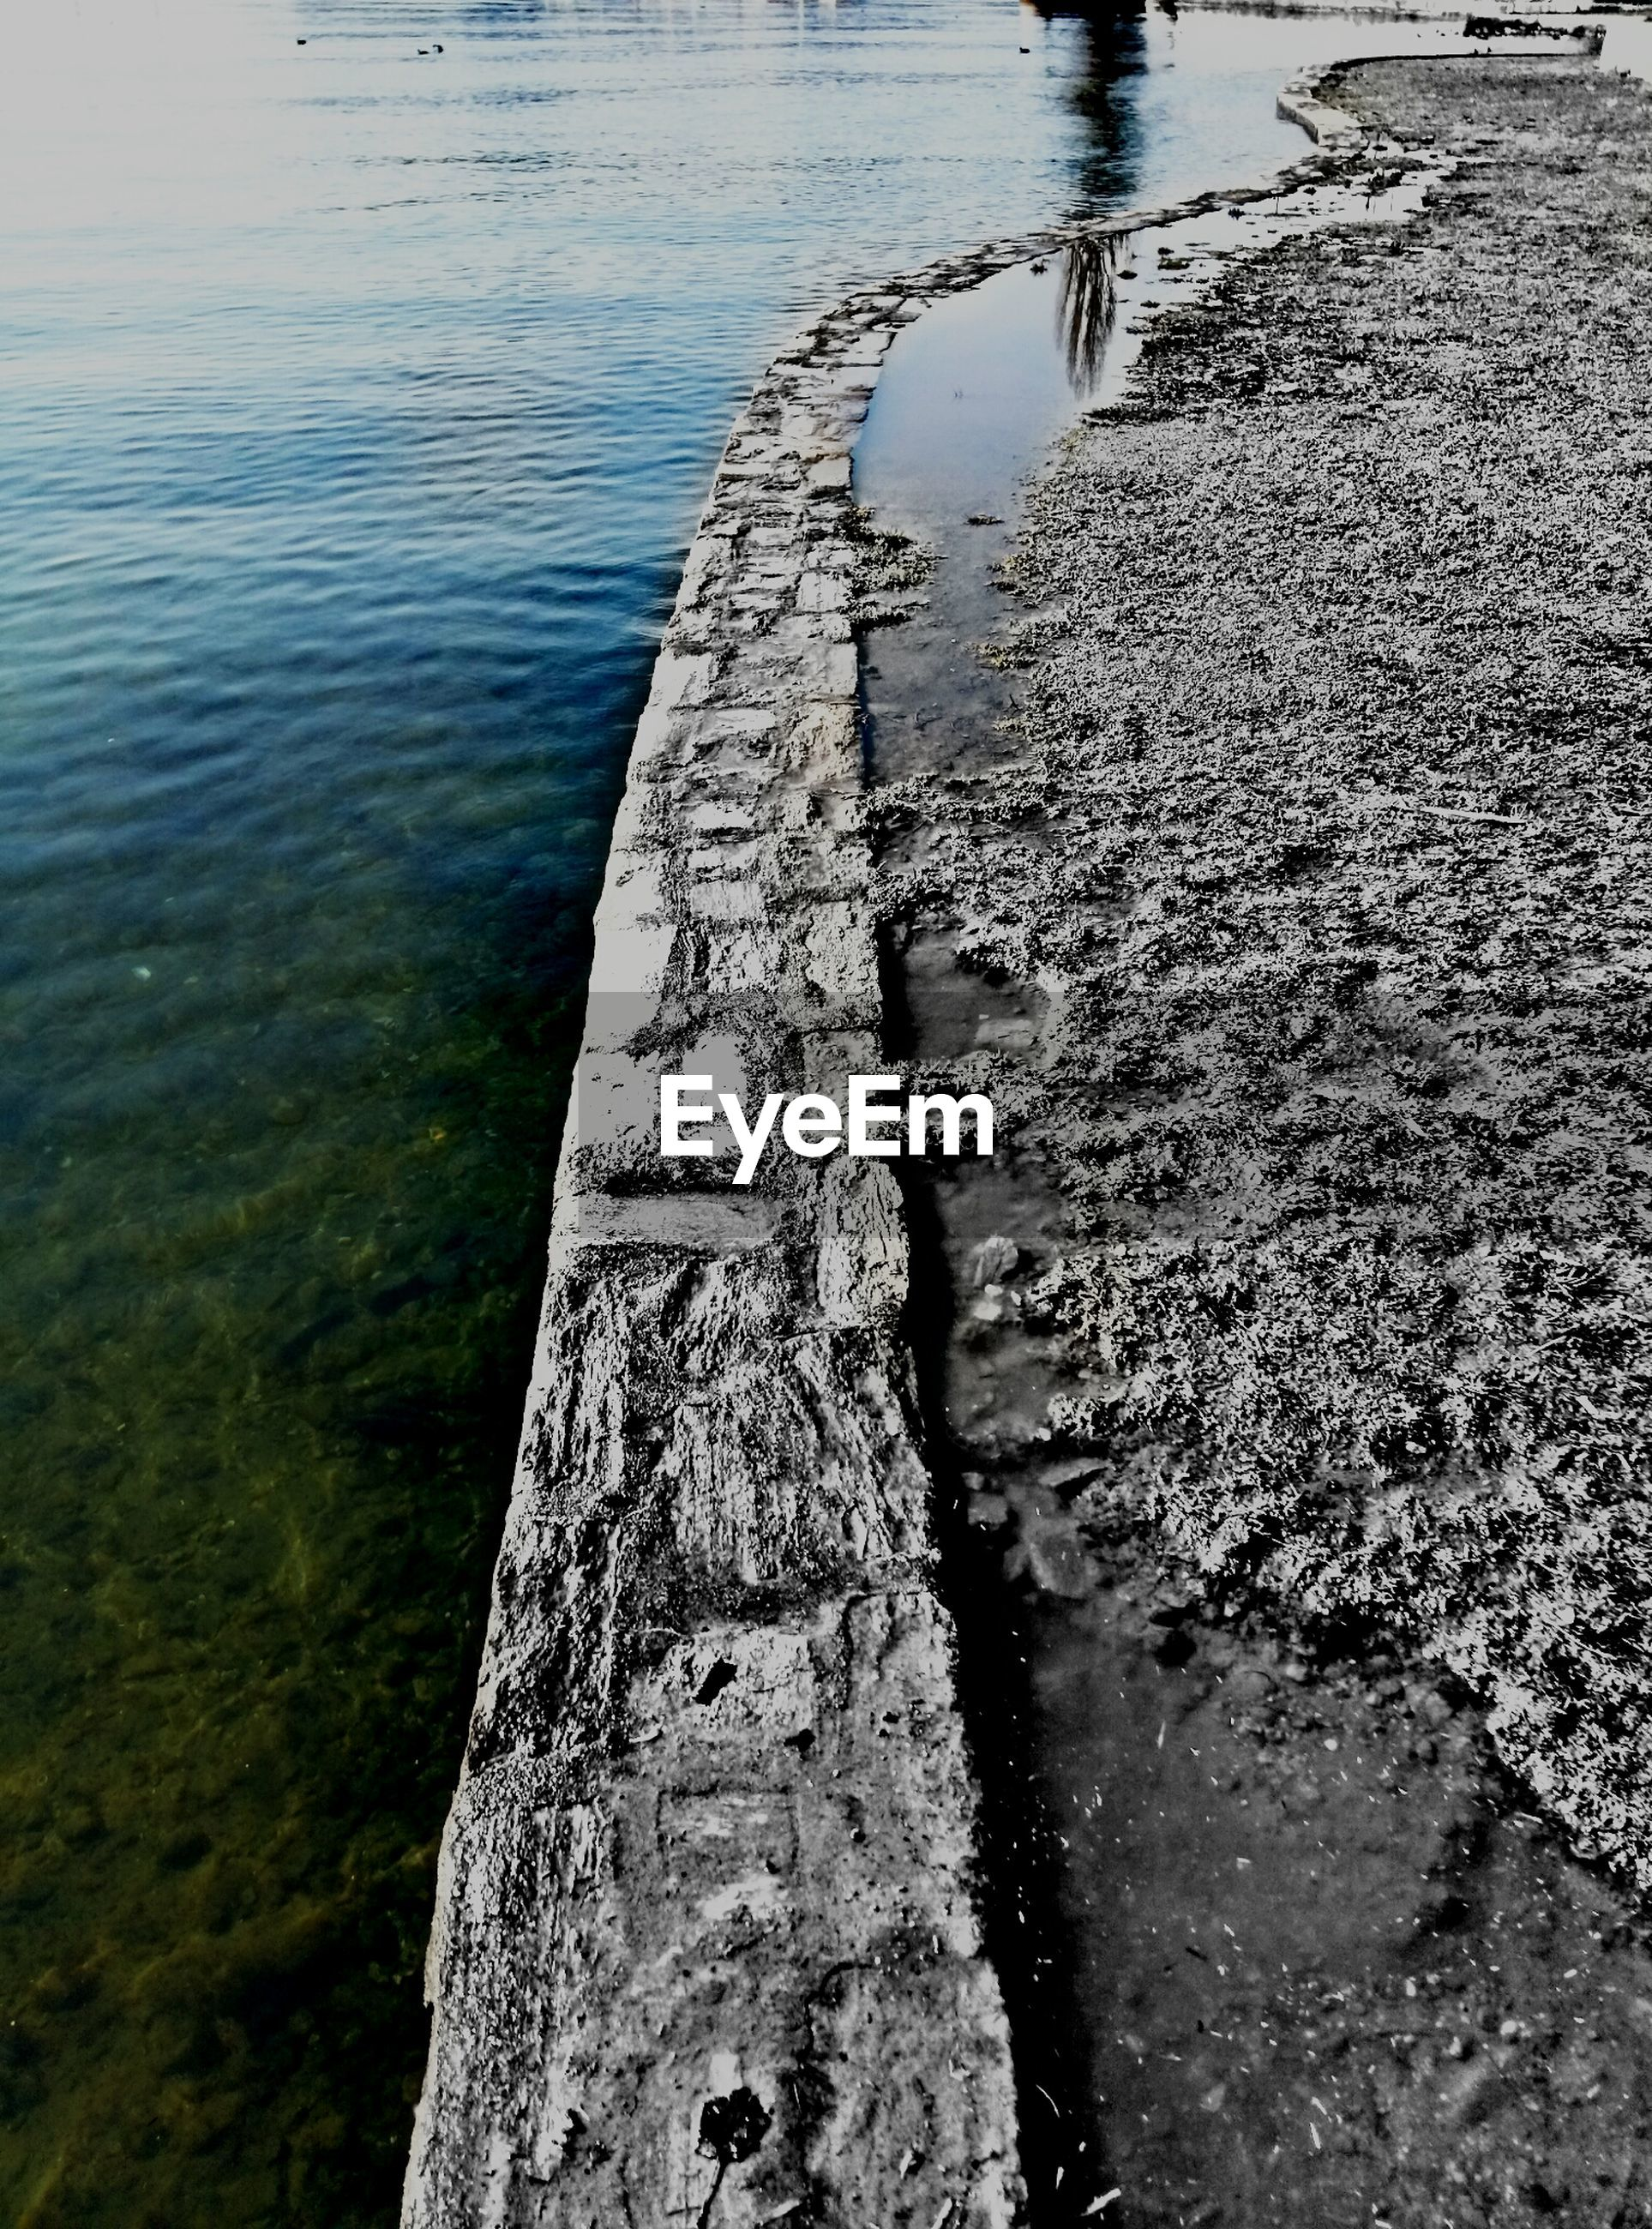 water, high angle view, sea, rippled, reflection, lake, nature, tranquility, rock - object, day, outdoors, textured, river, waterfront, no people, pier, weathered, stone - object, sunlight, beauty in nature